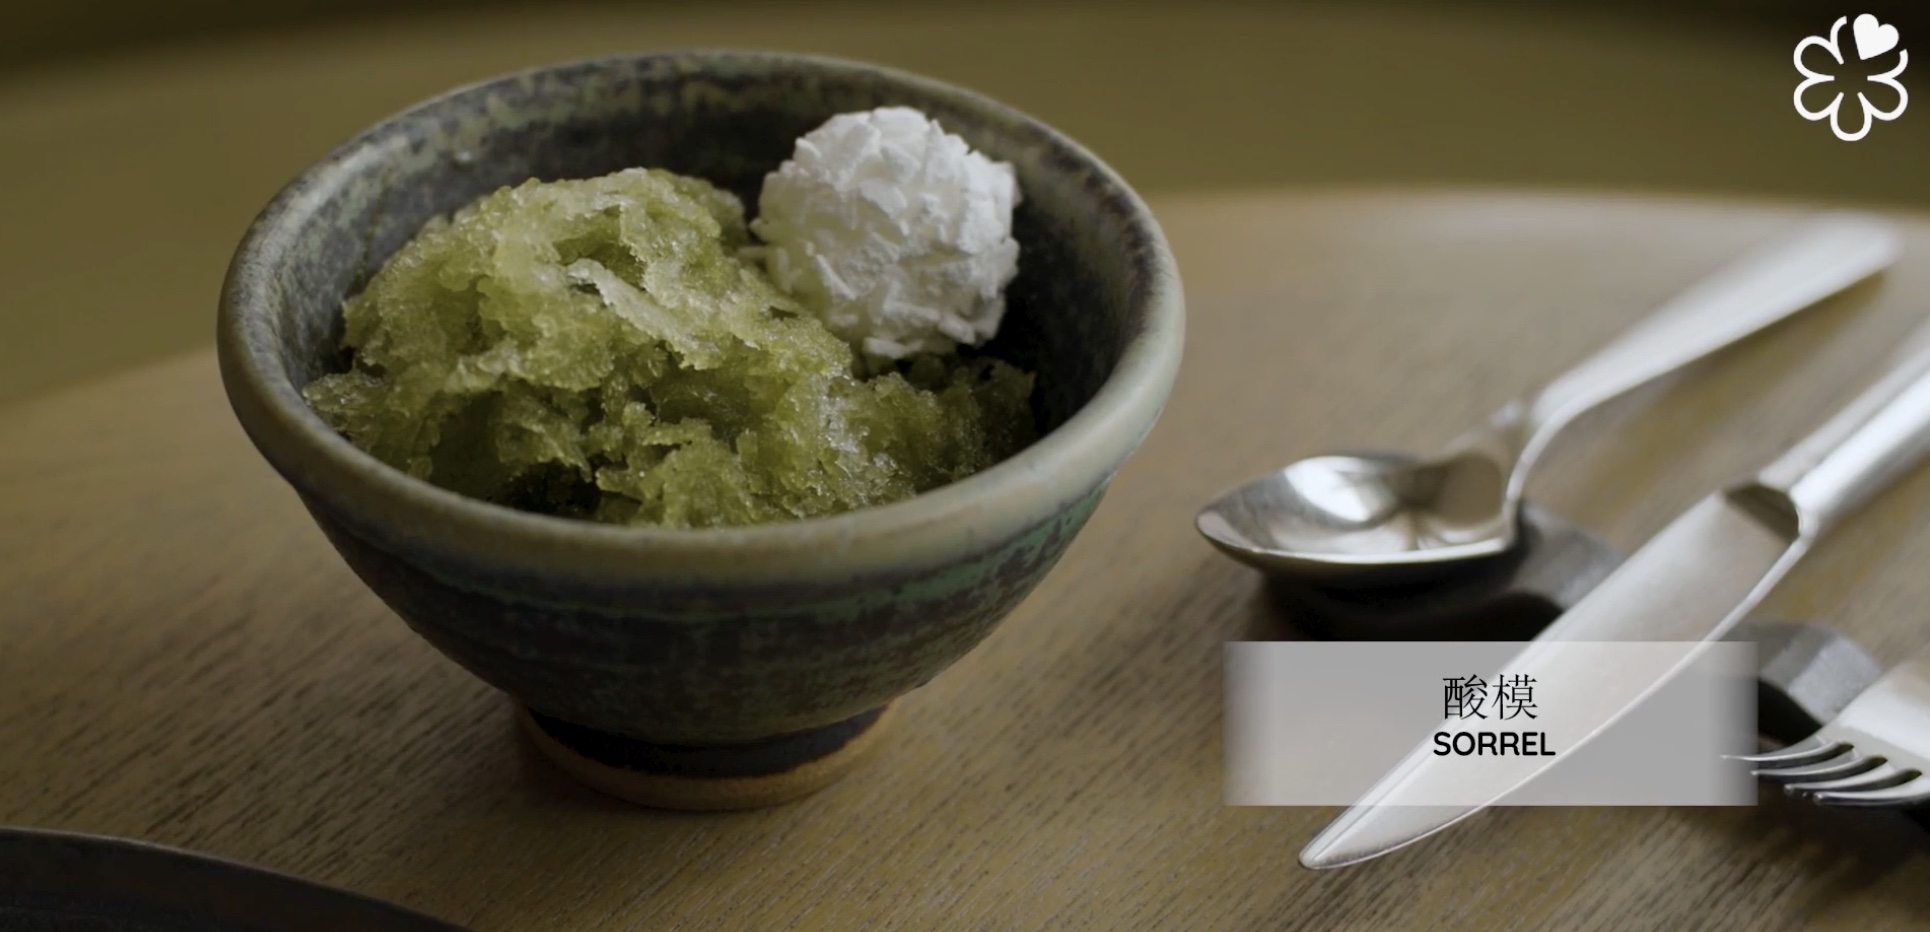 Shaved ice with sorrel sauce and marshmallow snowball.